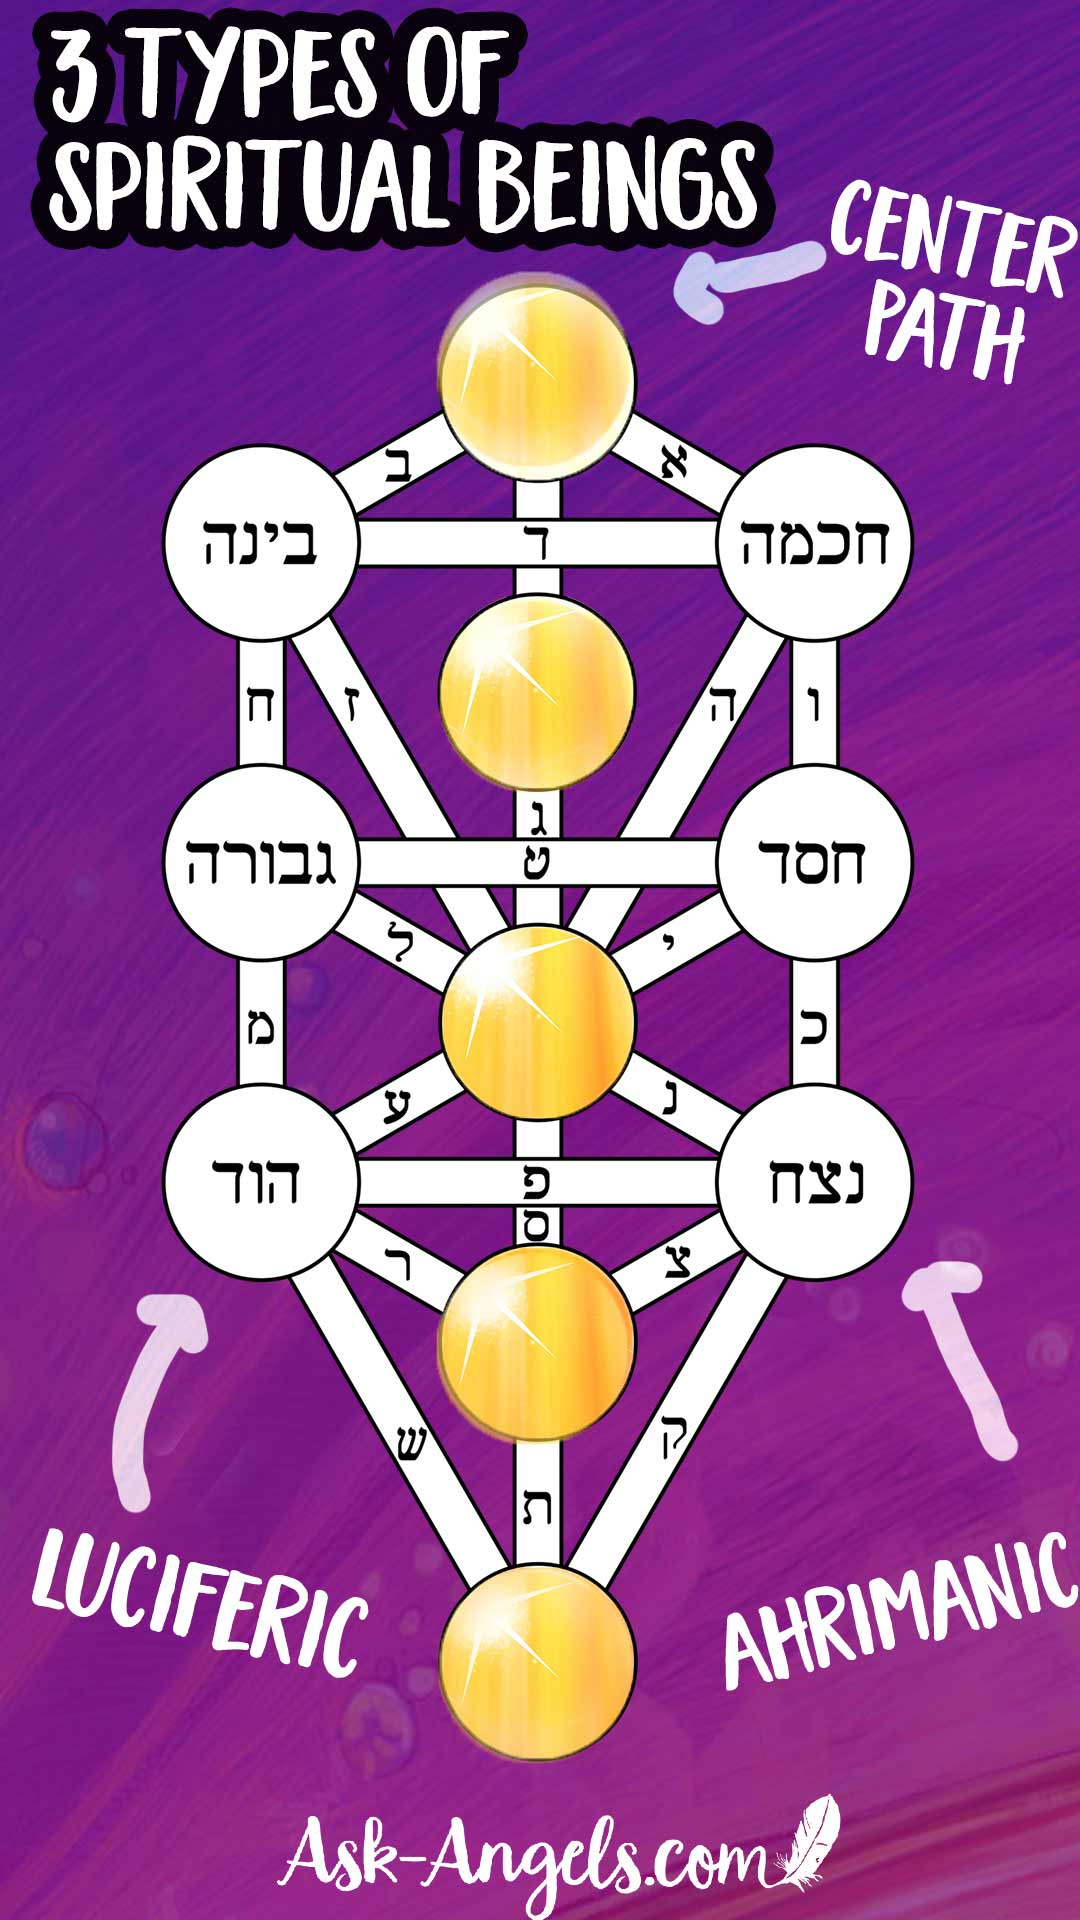 Hidden Insight Into the Types of Spiritual Beings found in the Kabbalistic Tree of Life